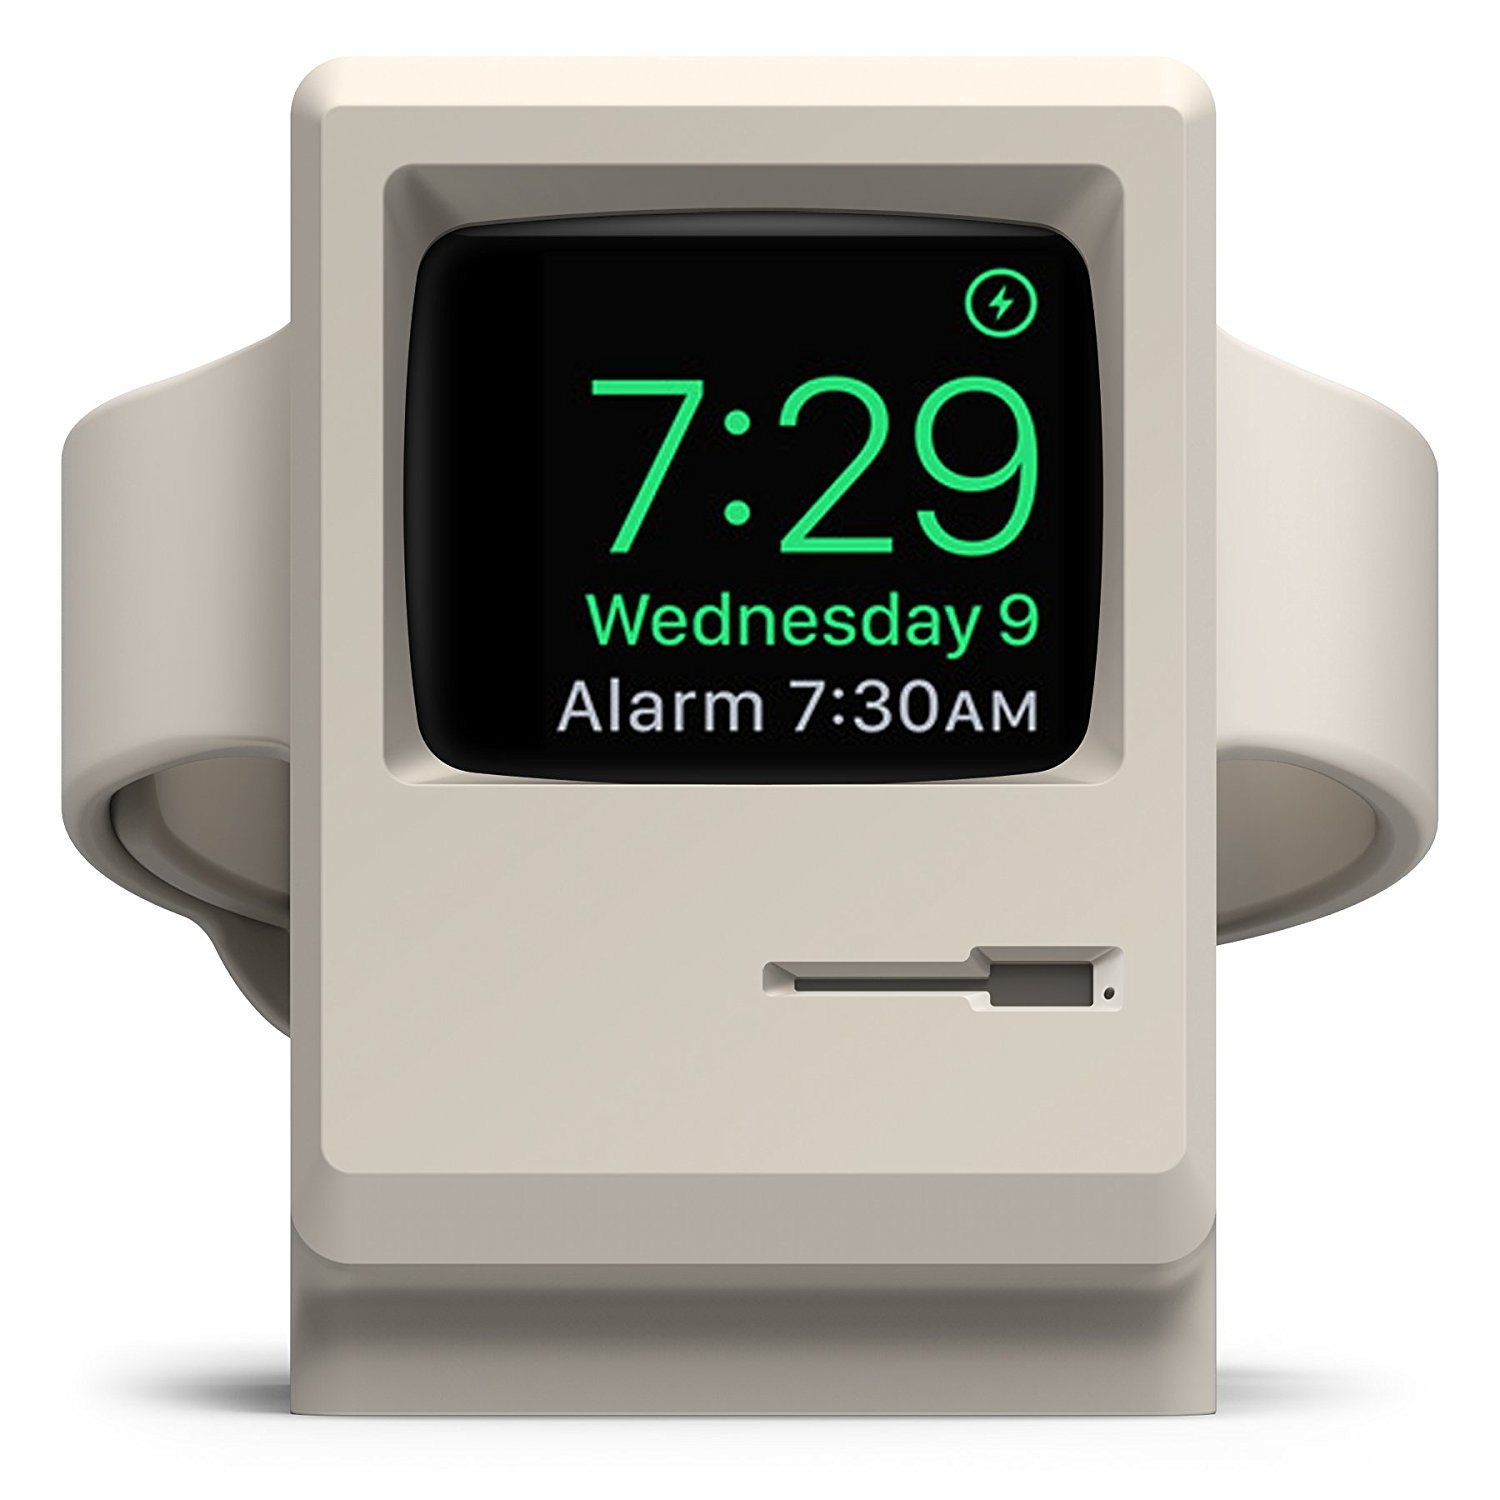 elago W3 Stand for Apple Watch Series 4 (40mm) / Series 3 / Series 2 / Series 1 / 42mm / 40mm / 38mm [Nightstand Mode][Original Design Awards][Patent Pending] - White product image